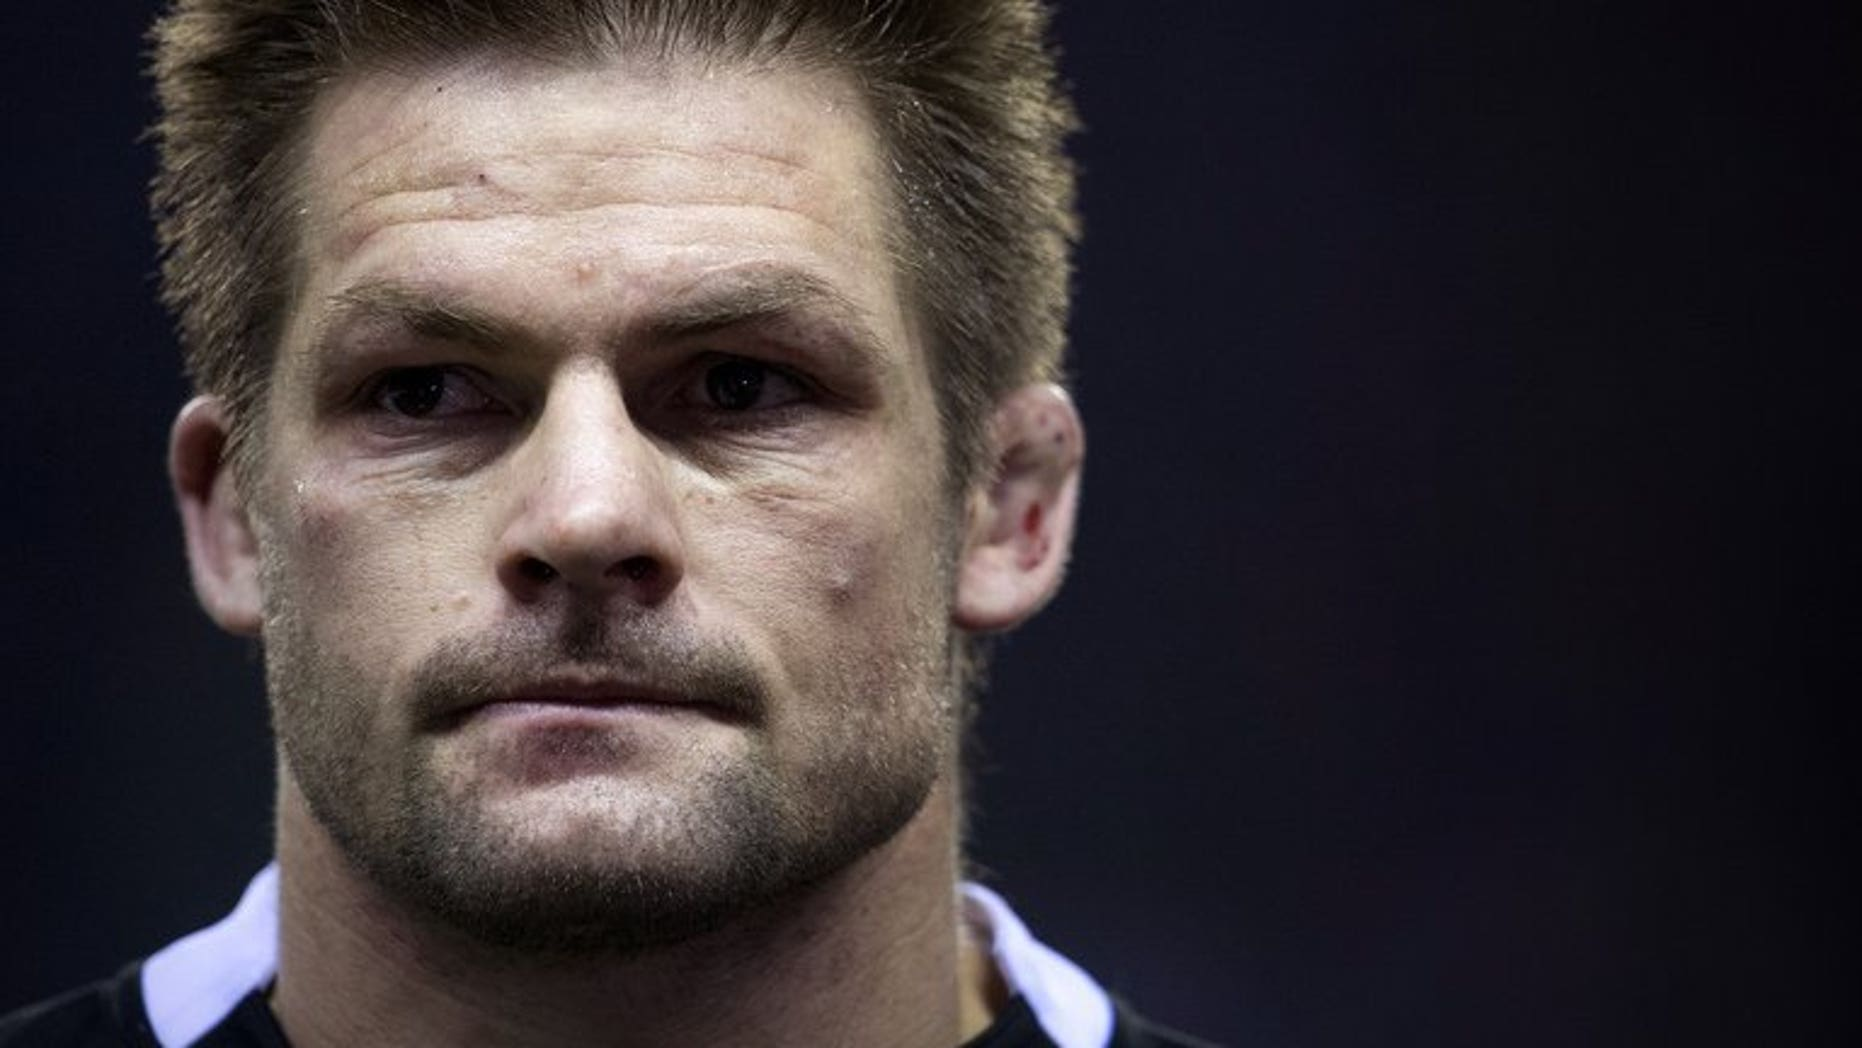 In this file photo, New Zealand All Blacks' captain Richie McCaw is pictured at Twickenham Stadium, southwest of London, on December 1, 2012. McCaw ended a seven-month break from rugby in a humble amateur match on Saturday before declaring himself ready to return to the professional fray.